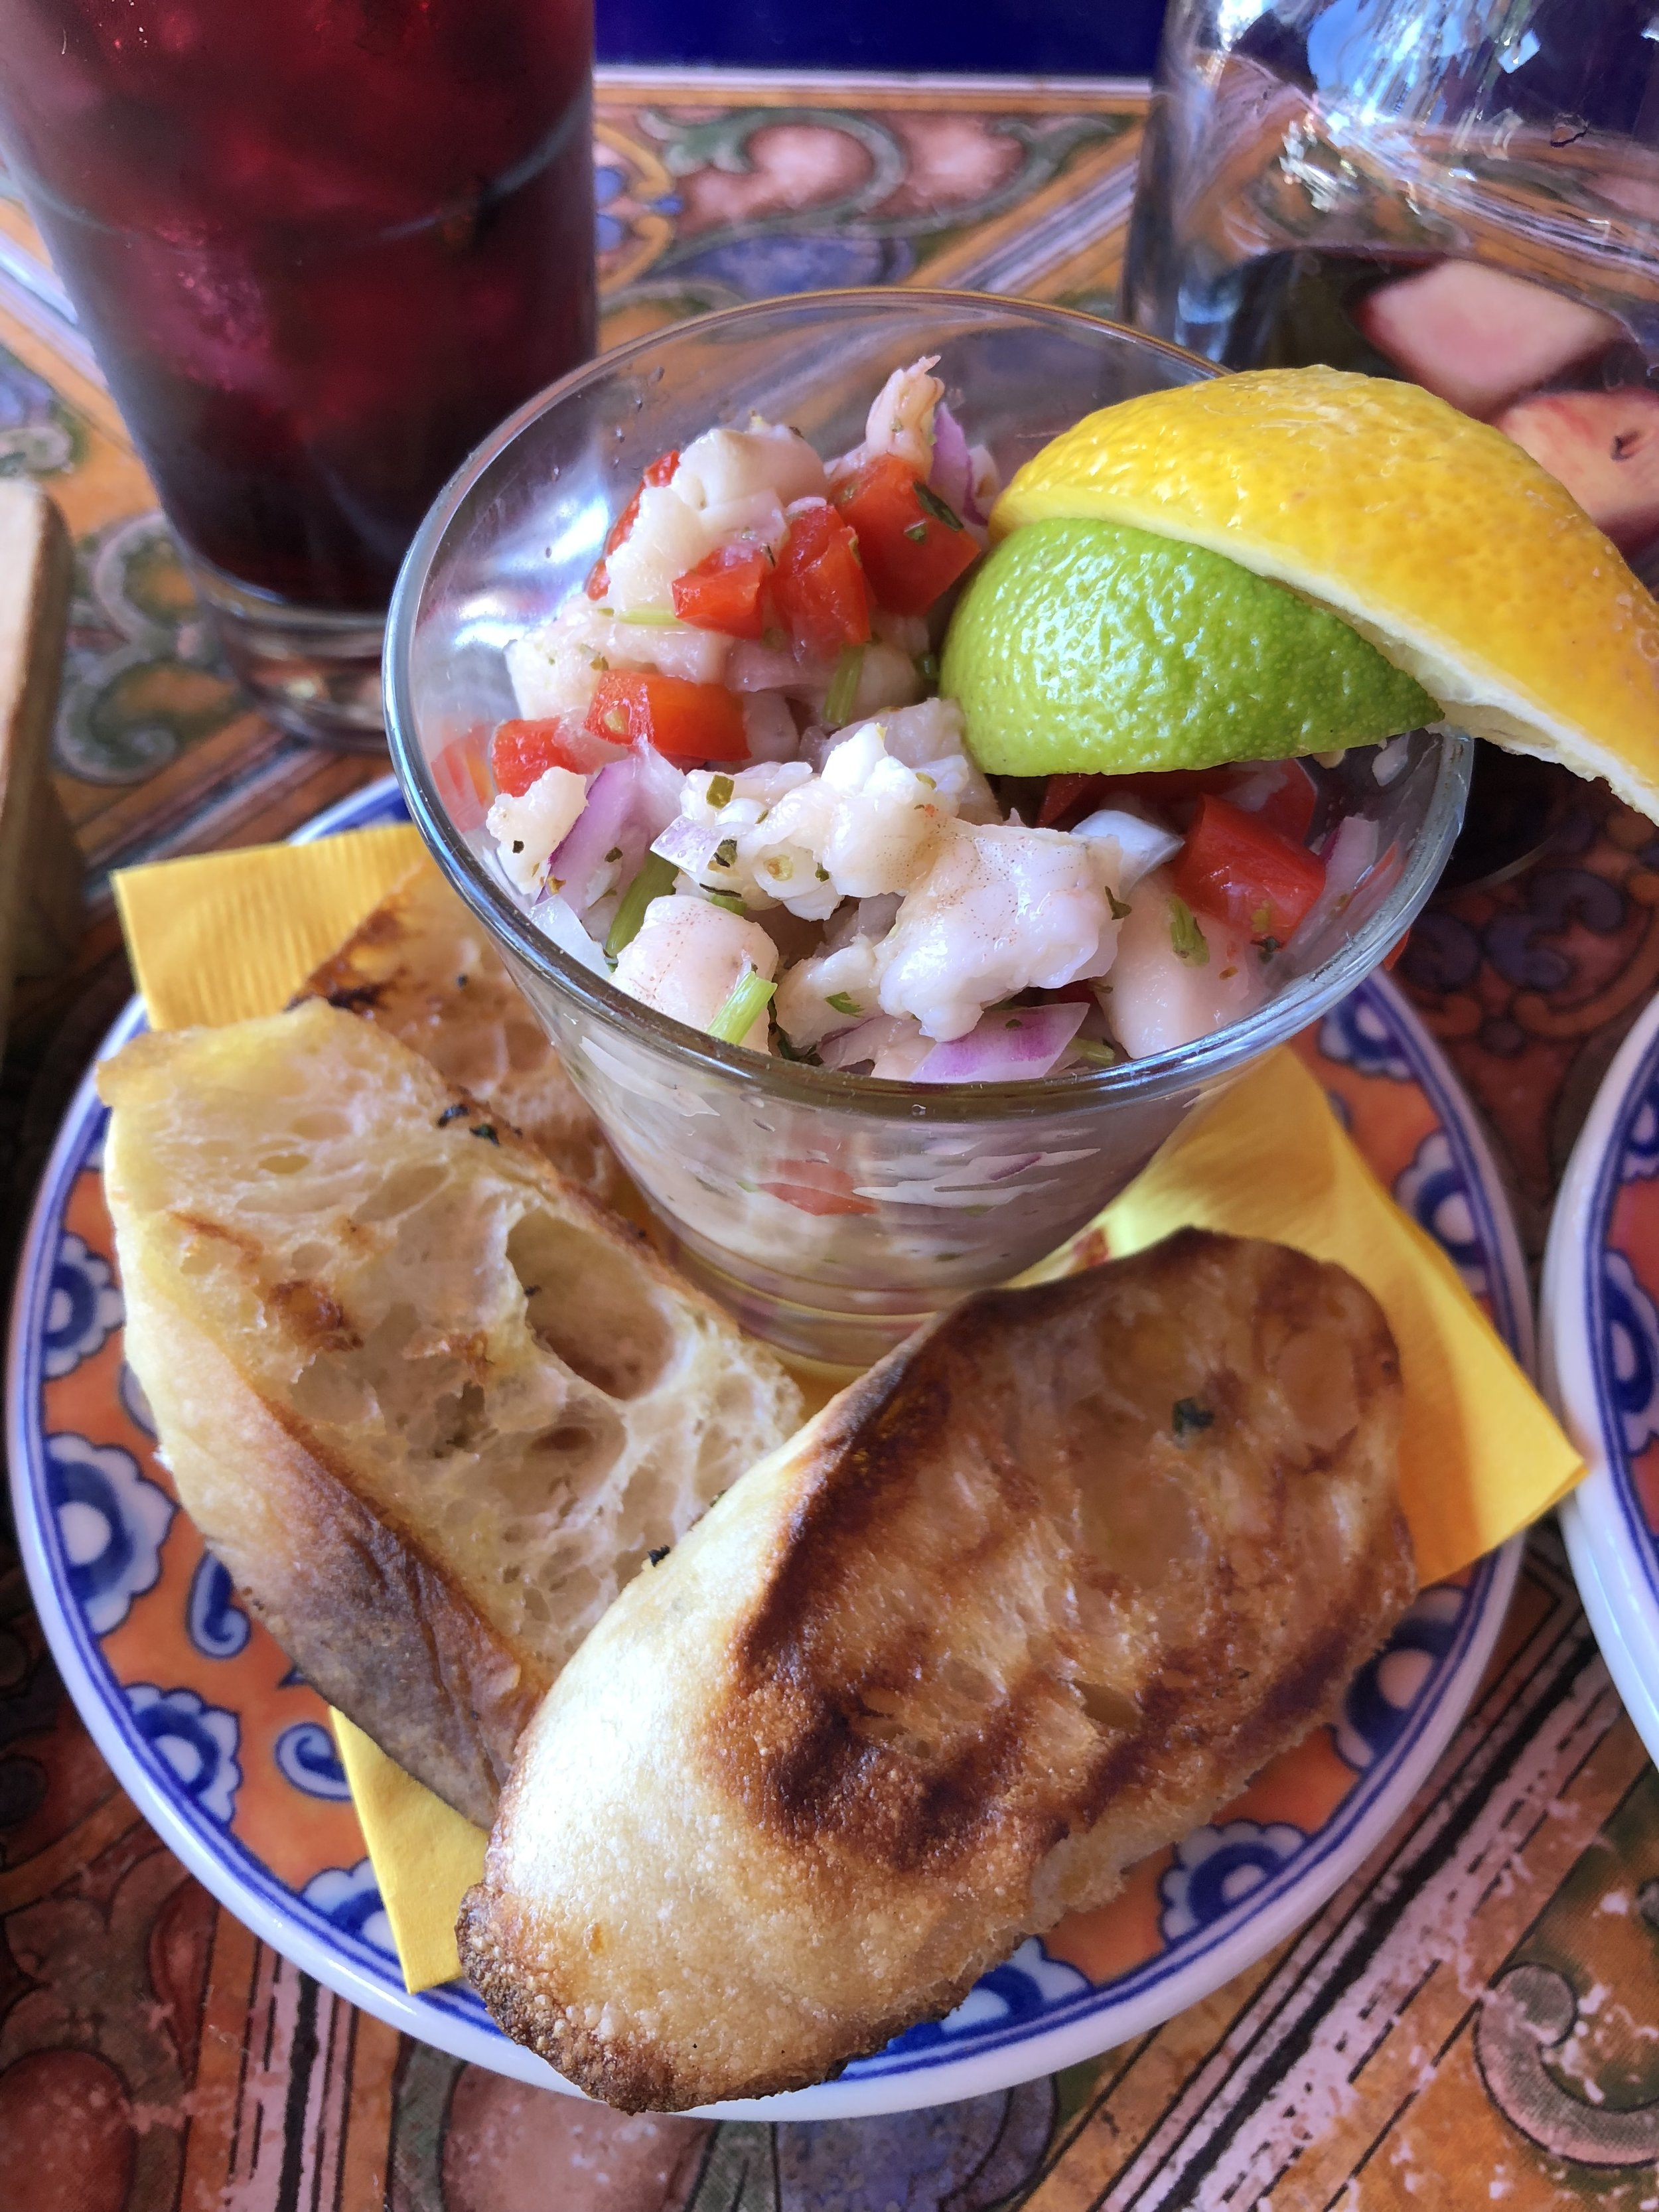 Shrimp and red snapper ceviche